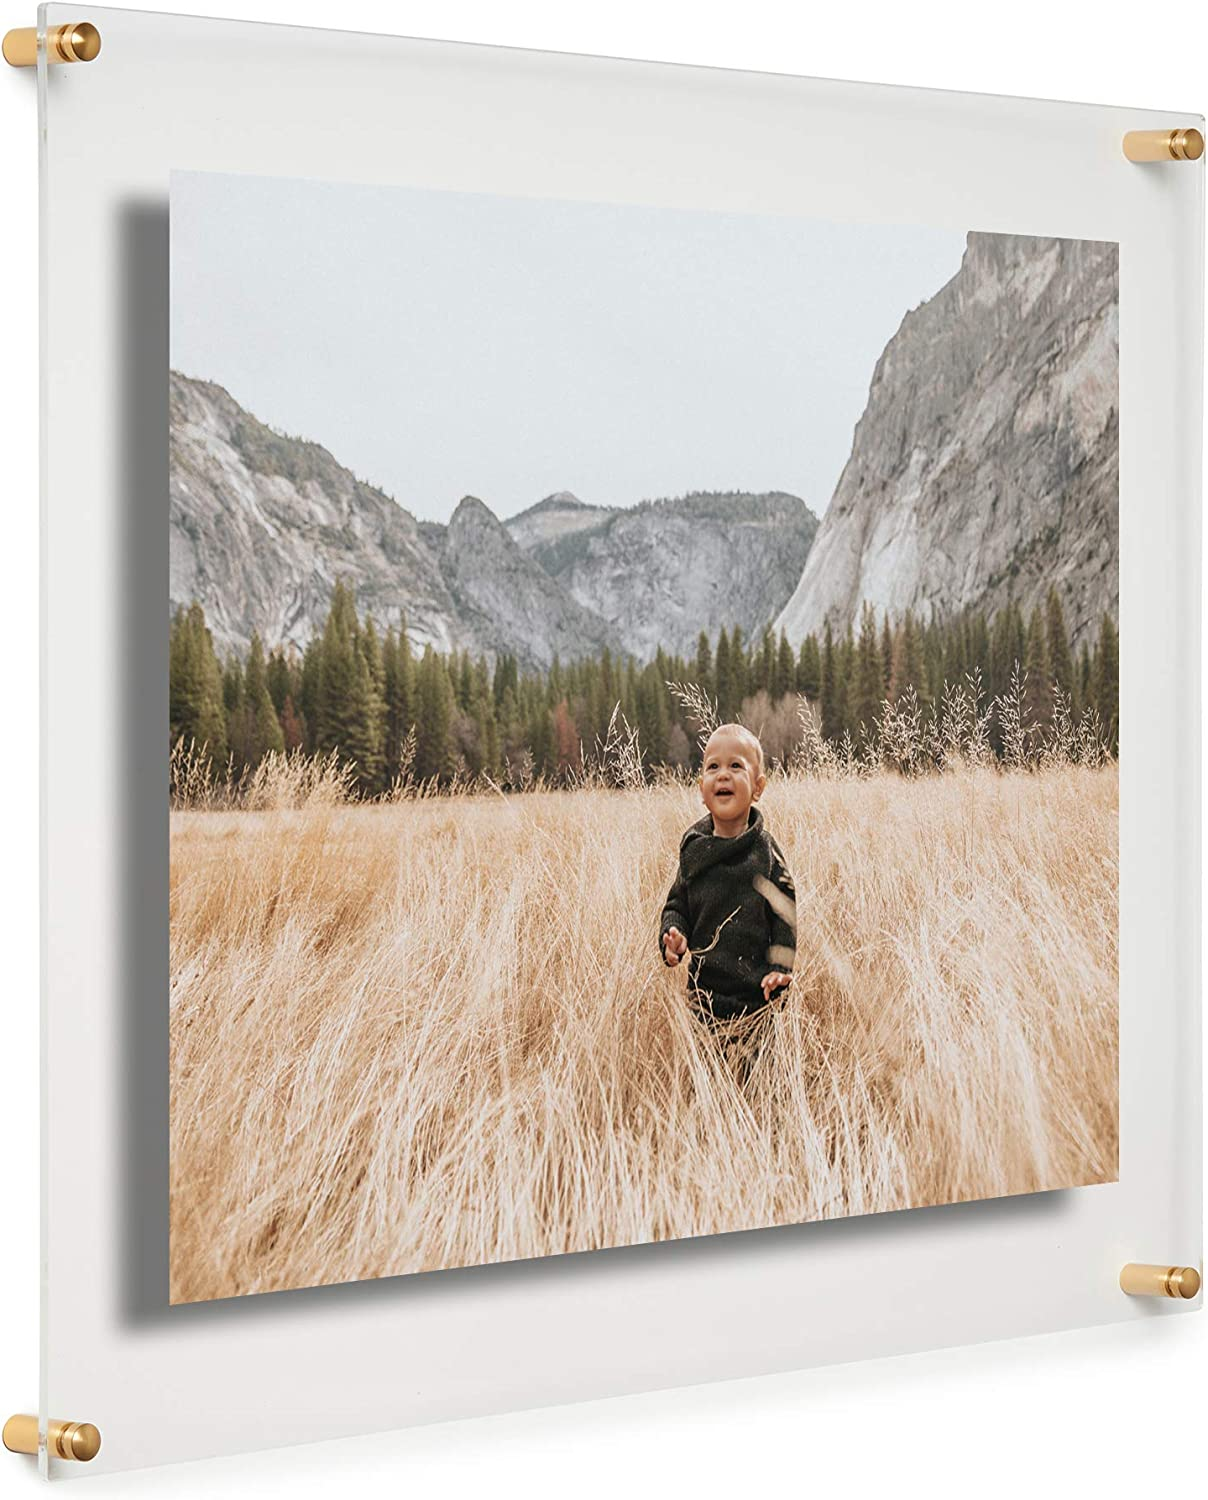 Cool Modern Frames Clear Floating Double Panel Acrylic Picture Frame 16x20 Inch Gold Hardware Amazon Co Uk Kitchen Home